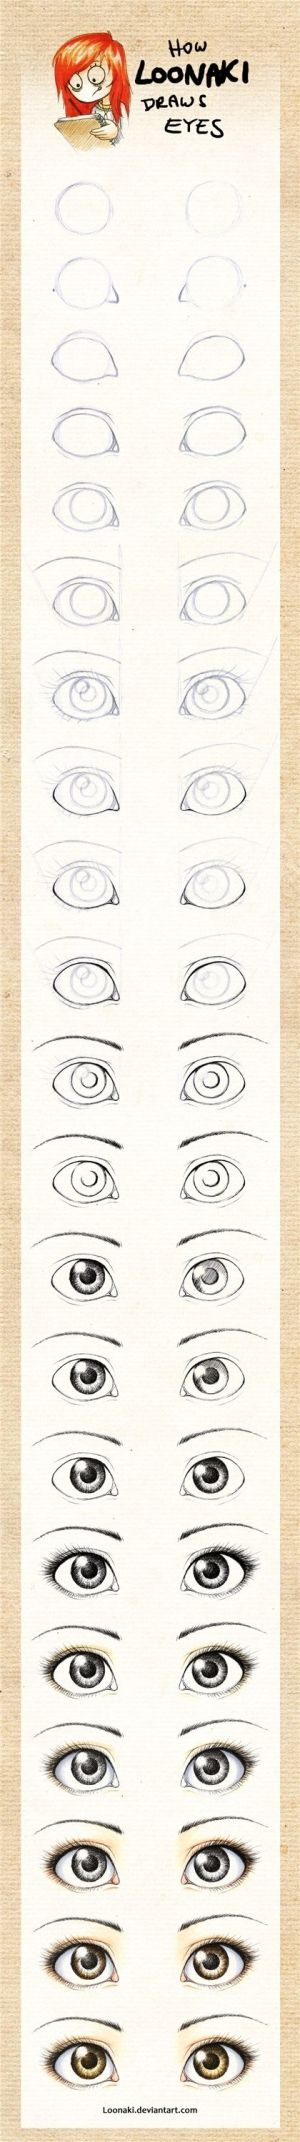 I've always wanted to learn how to draw eyeballsss <3